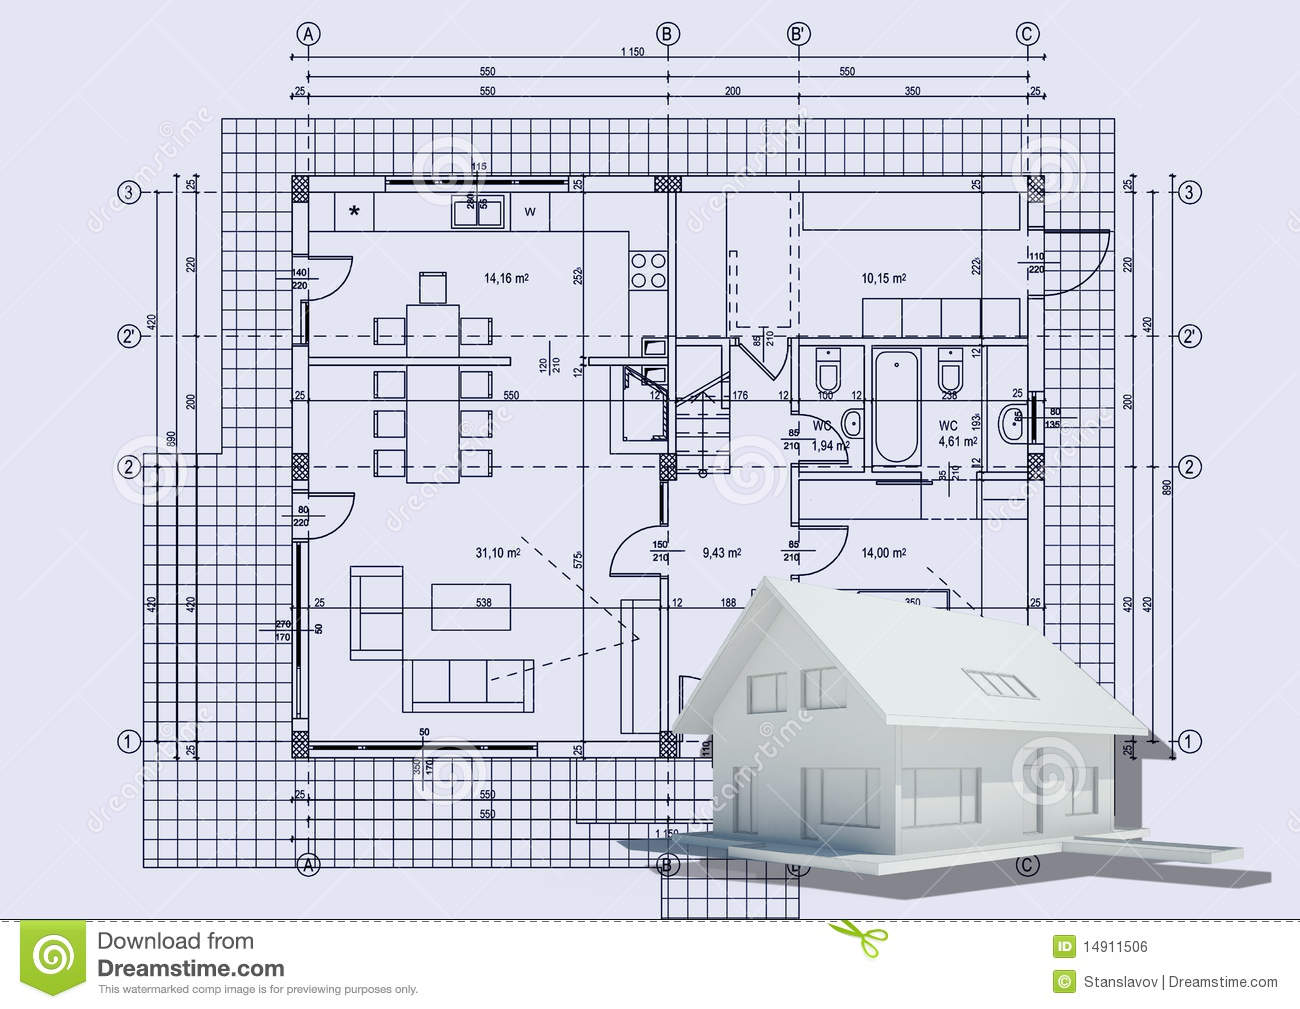 Drawing with 3d house stock illustration image of House plan drawing 3d